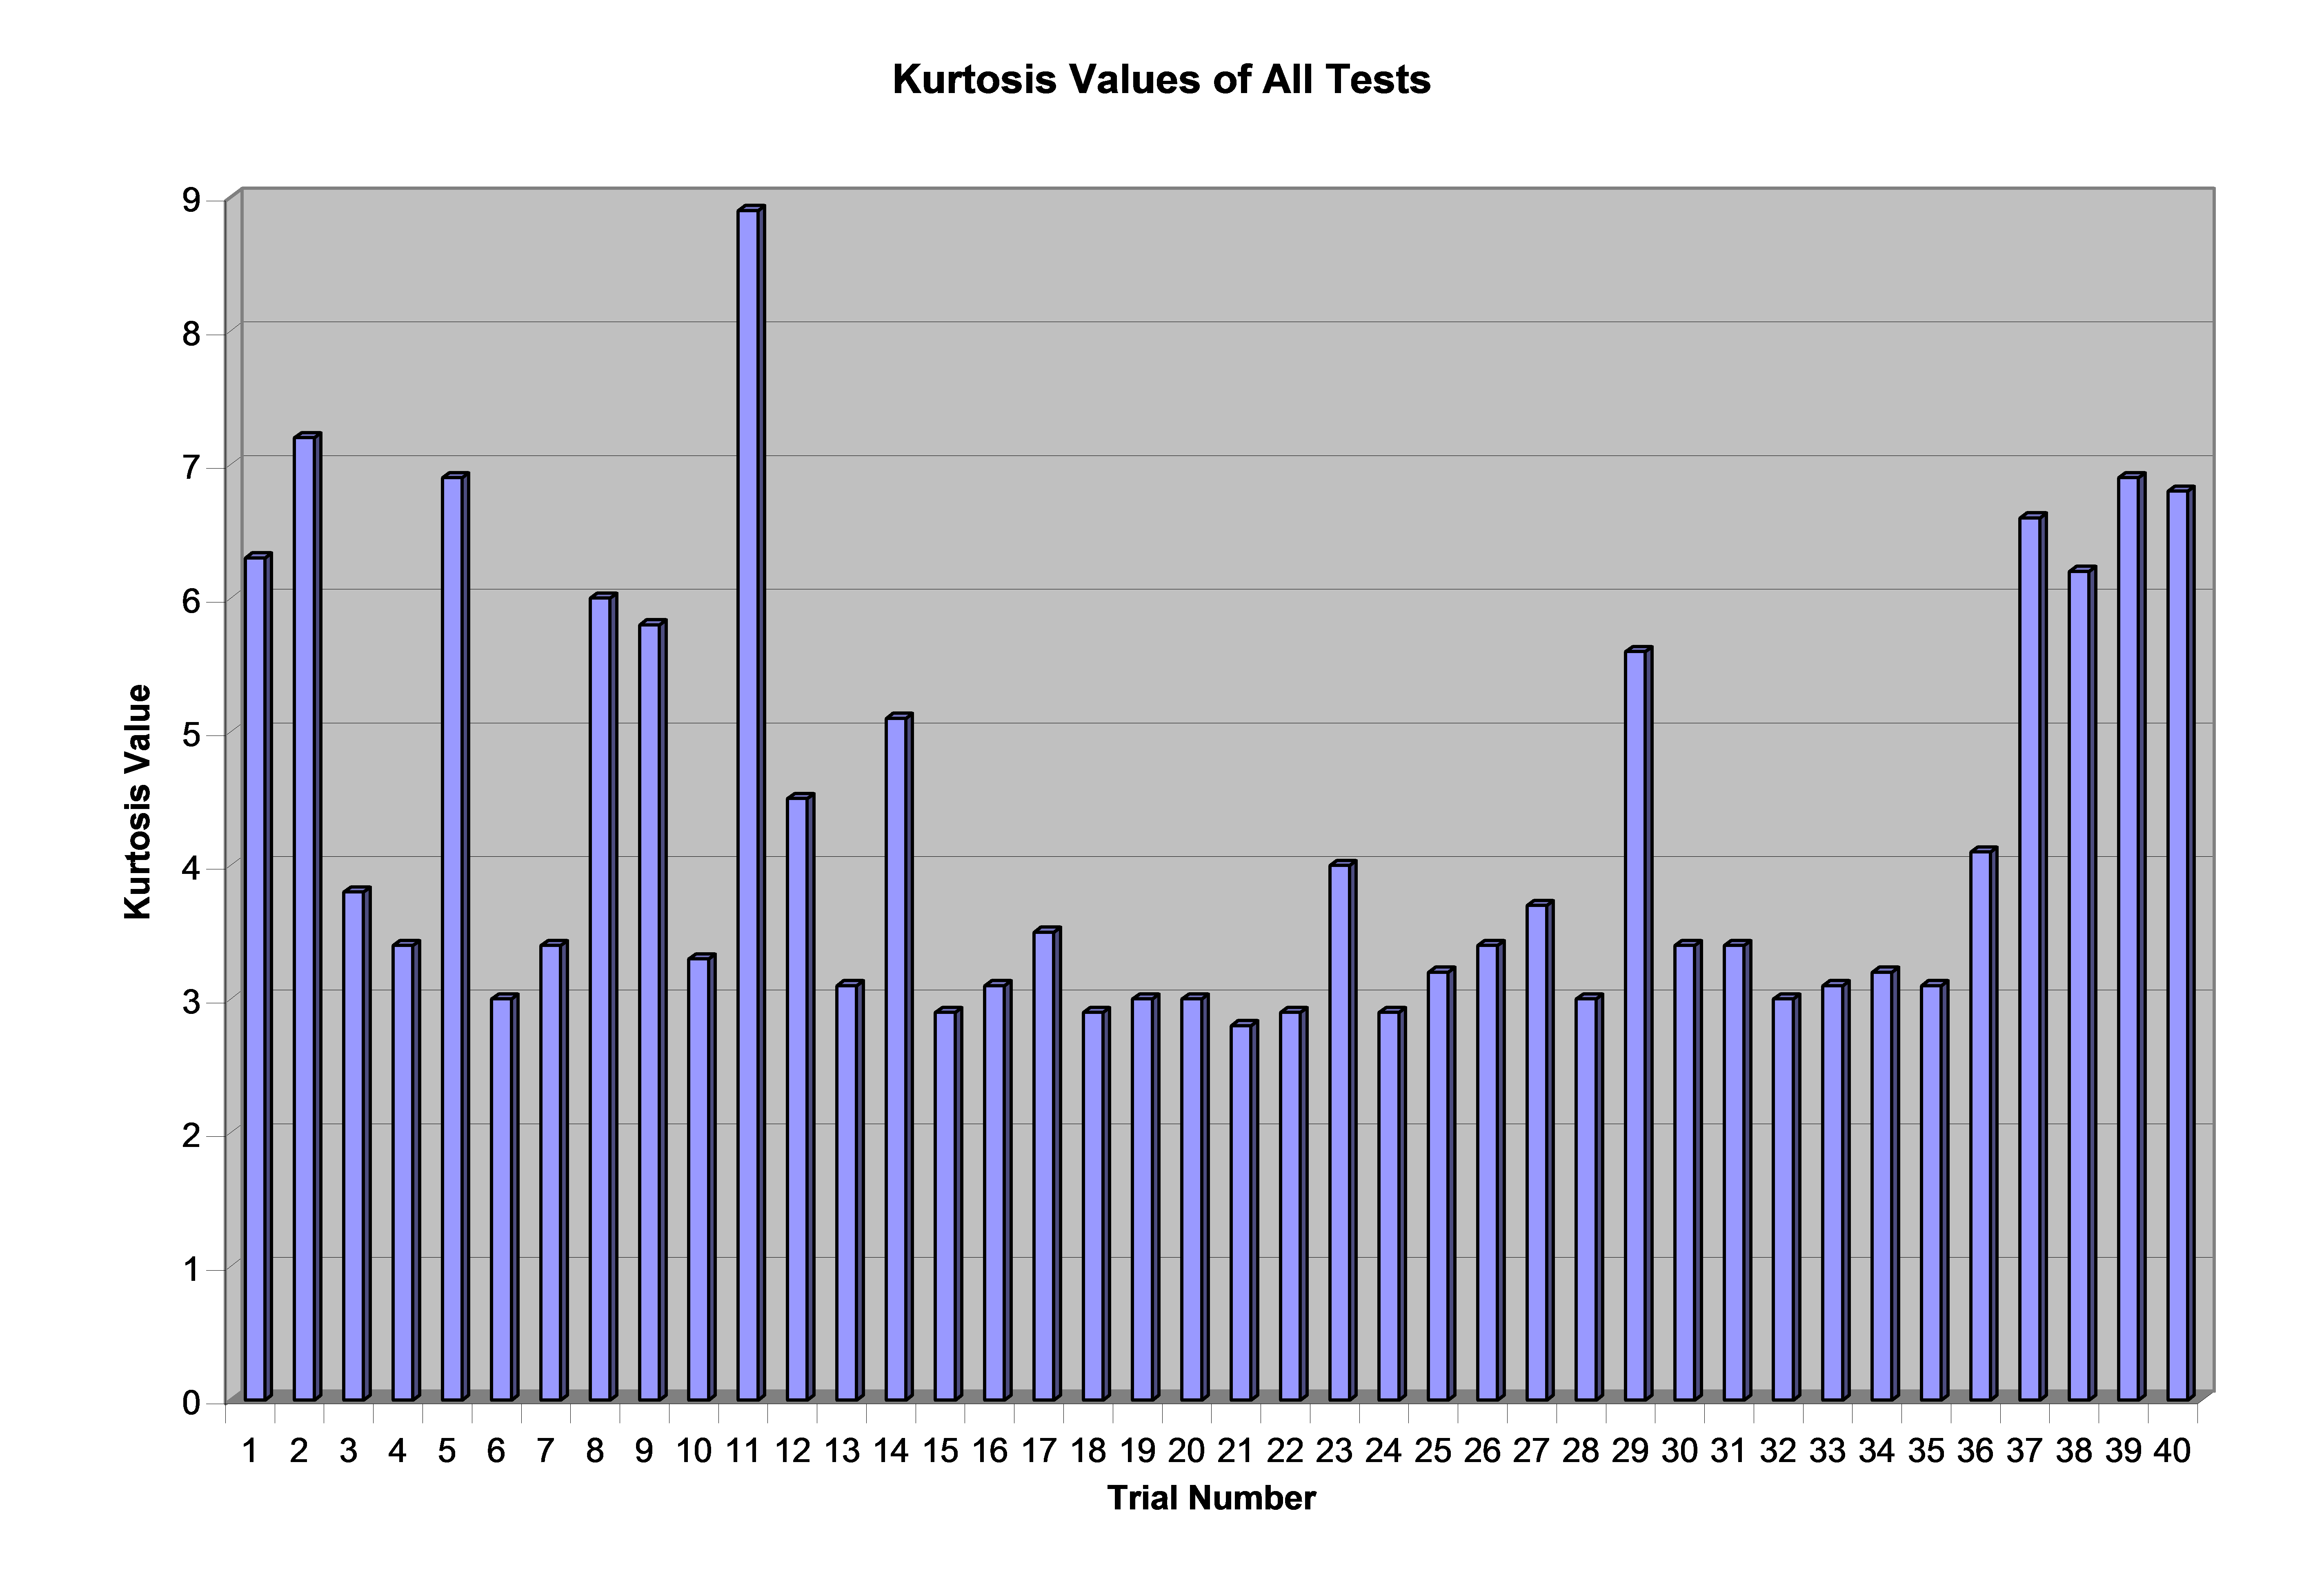 Kurtosis values for 40 tests conducted by Vibration Research Corporation